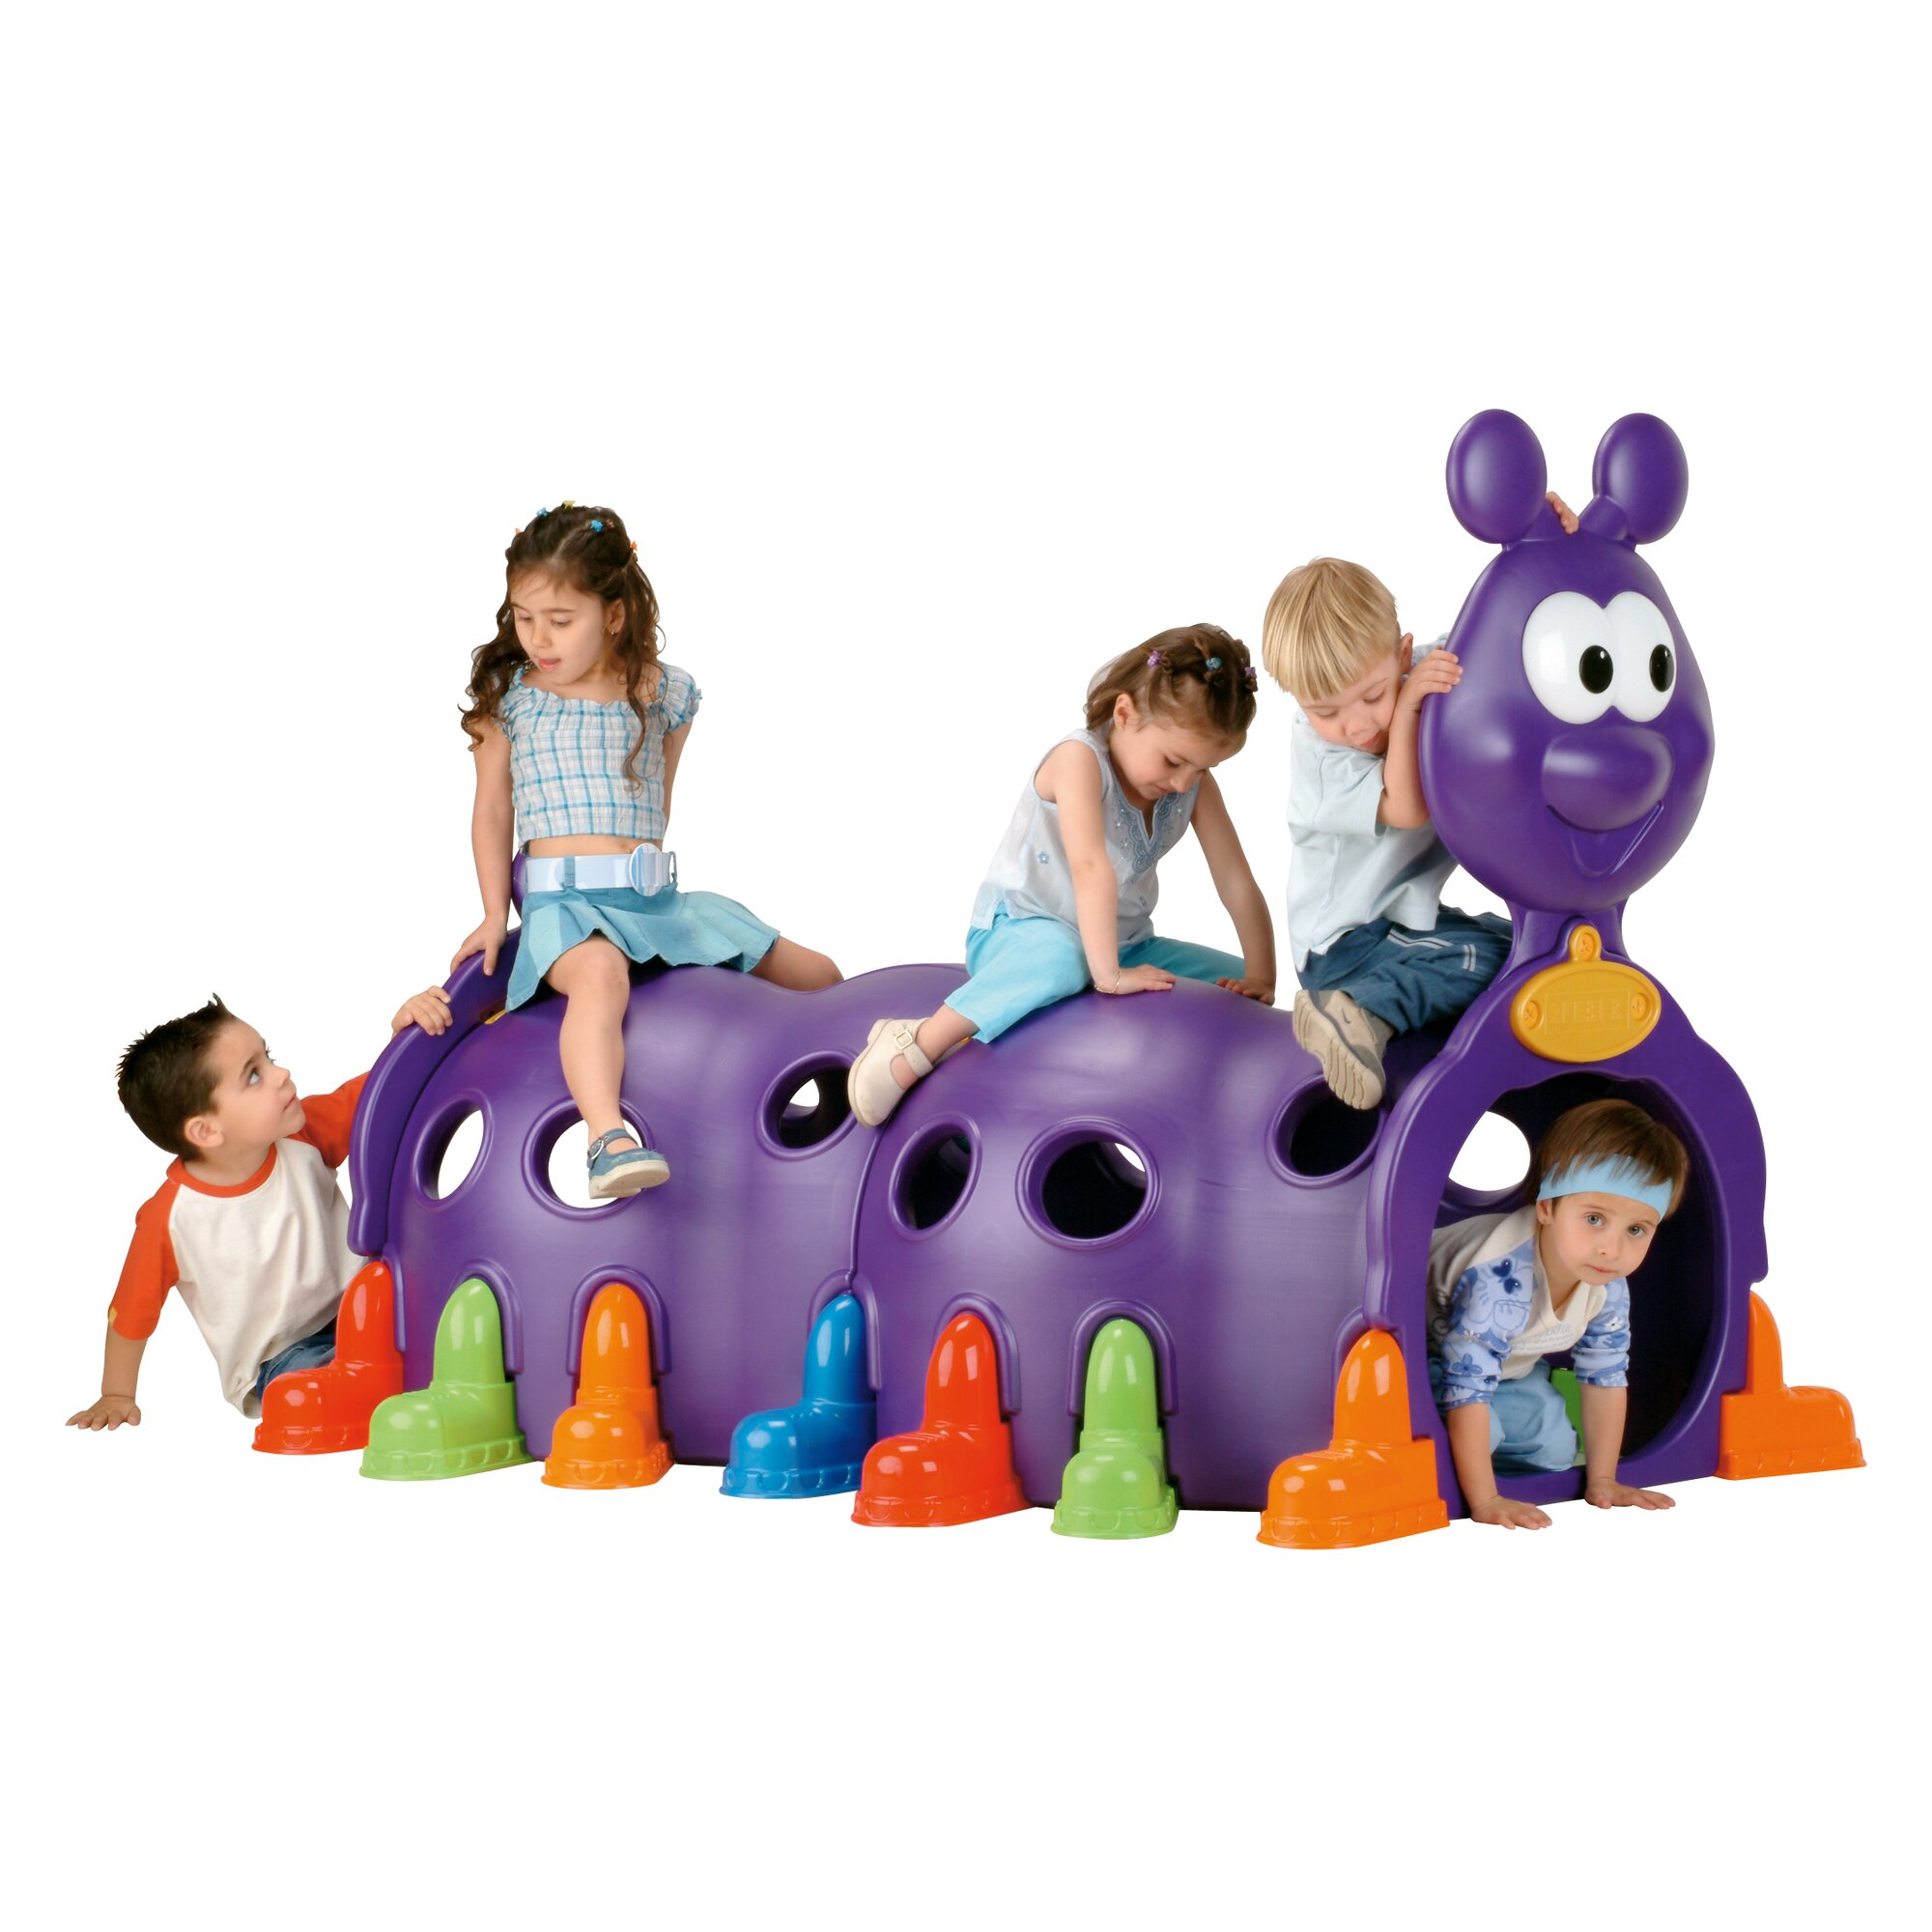 Happy+Caterpillar+Tunnel+Playground Home Daycare Furniture Credit Card on college lounge furniture, dramatic play furniture, home toys, family day care furniture, knock down plywood furniture, office furniture, home day care room ideas, business furniture, classroom furniture, home chairs, camp furniture, montessori furniture, senior living furniture, home health care logs, special needs furniture, day care looking for furniture, reading center furniture, home playground equipment, home office supplies, cafeteria furniture,